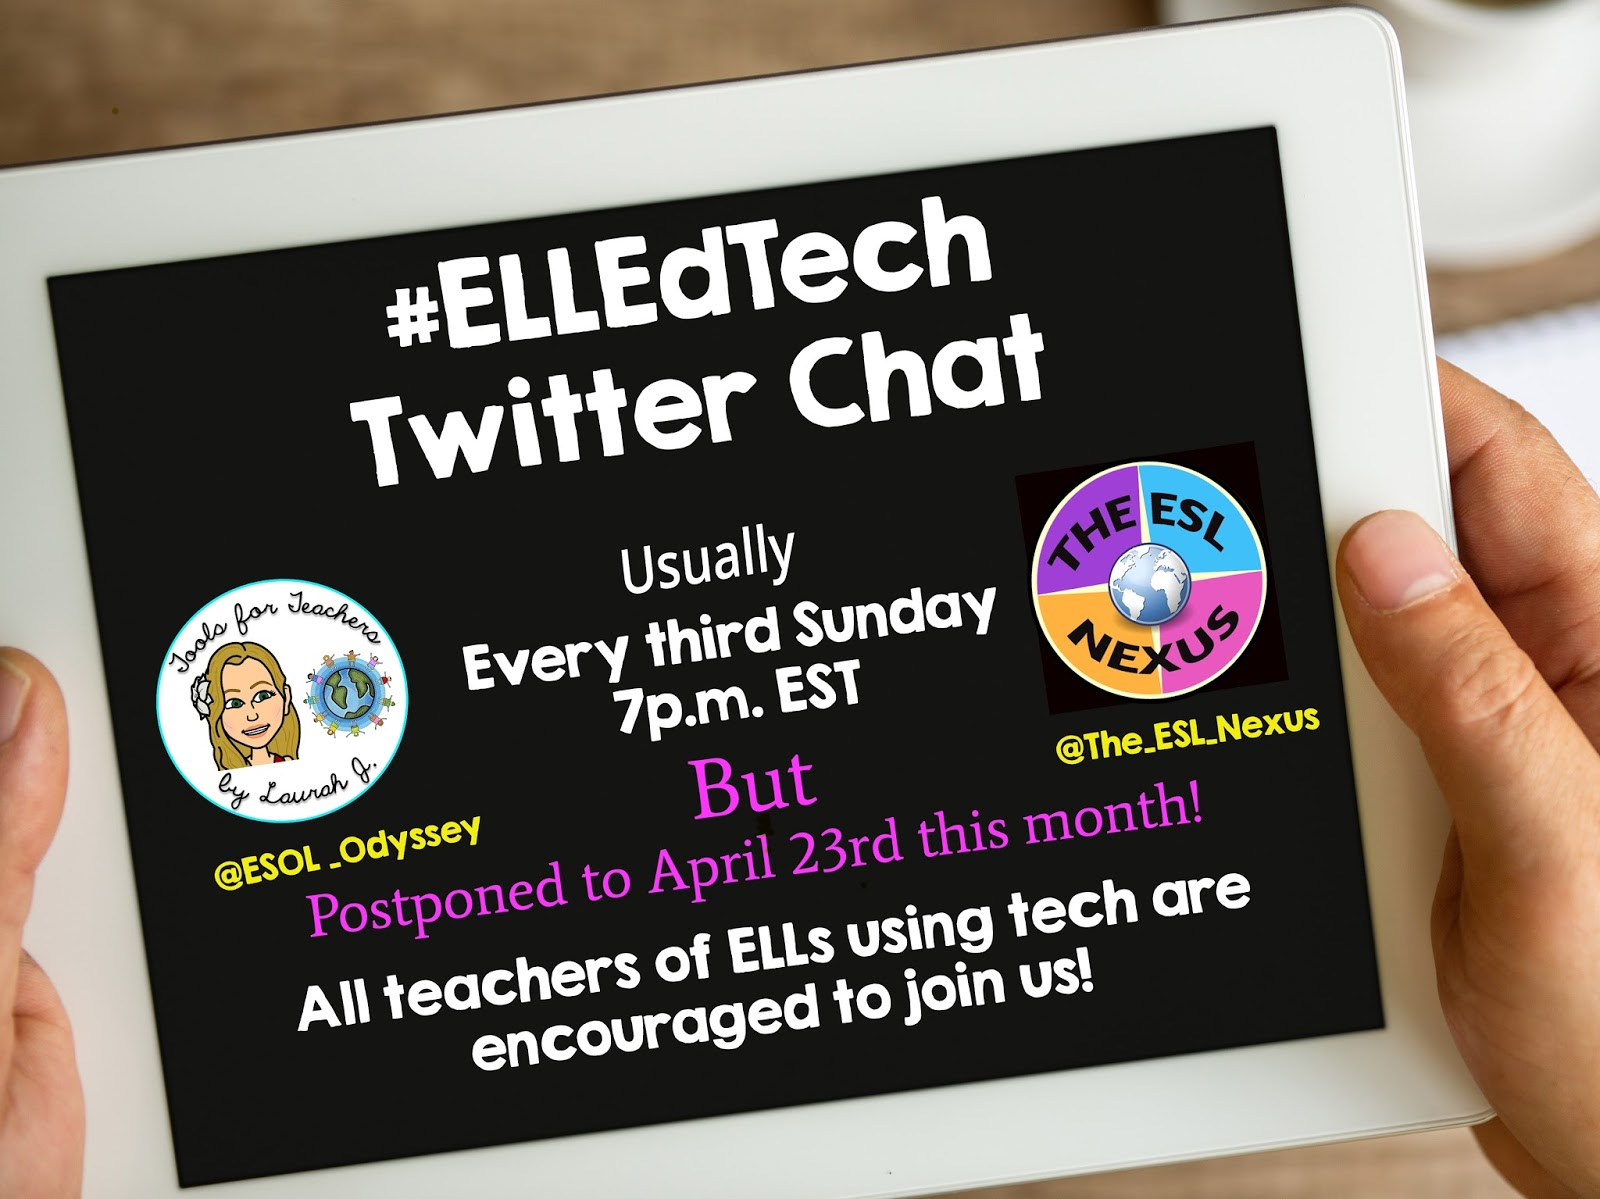 Join the #ELLEdTech Twitter chat on April 23, 2017 at 7pm EDT to discuss favorite tech tools | The ESL Connection